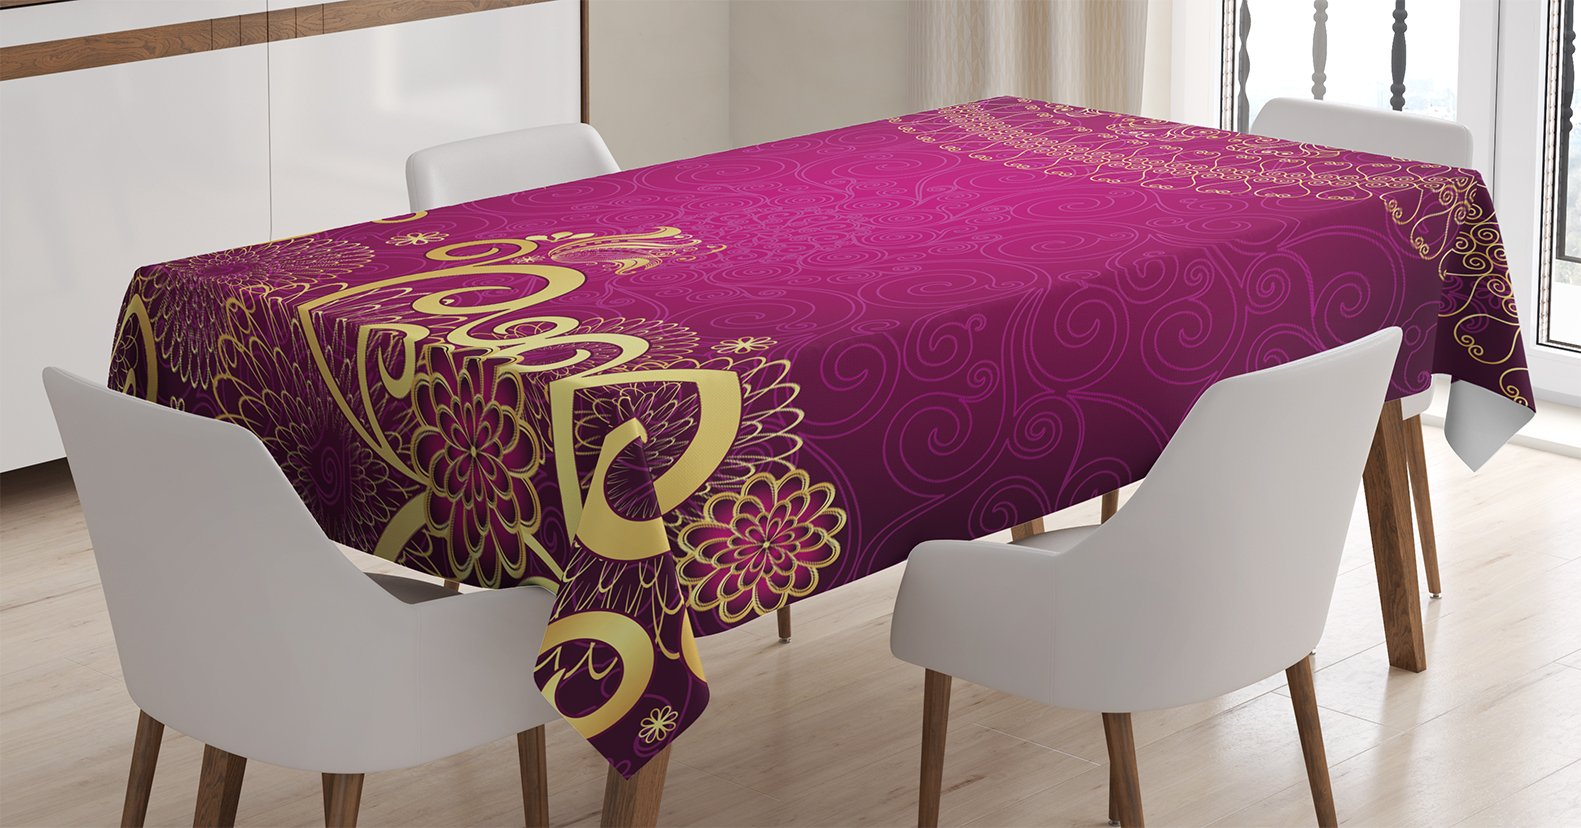 Ambesonne Purple Decor Tablecloth, Ethnic Indian Mandala Circle with Ornate Swirling Details Asian Royal Arabesque Theme, Rectangular Table Cover for Dining Room Kitchen, 60x84 Inches, Violet Gold